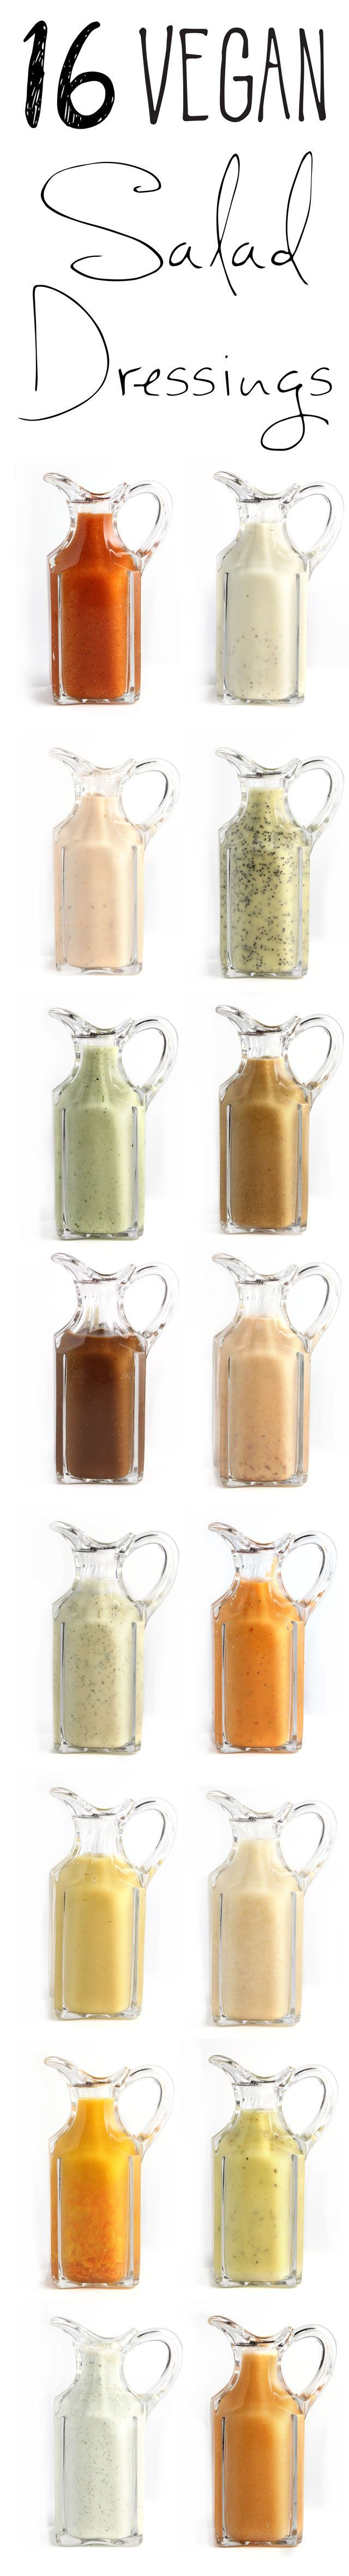 16 Vegan Salad Dressings!! All the classics made vegan, plus a few more great ideas #vegan